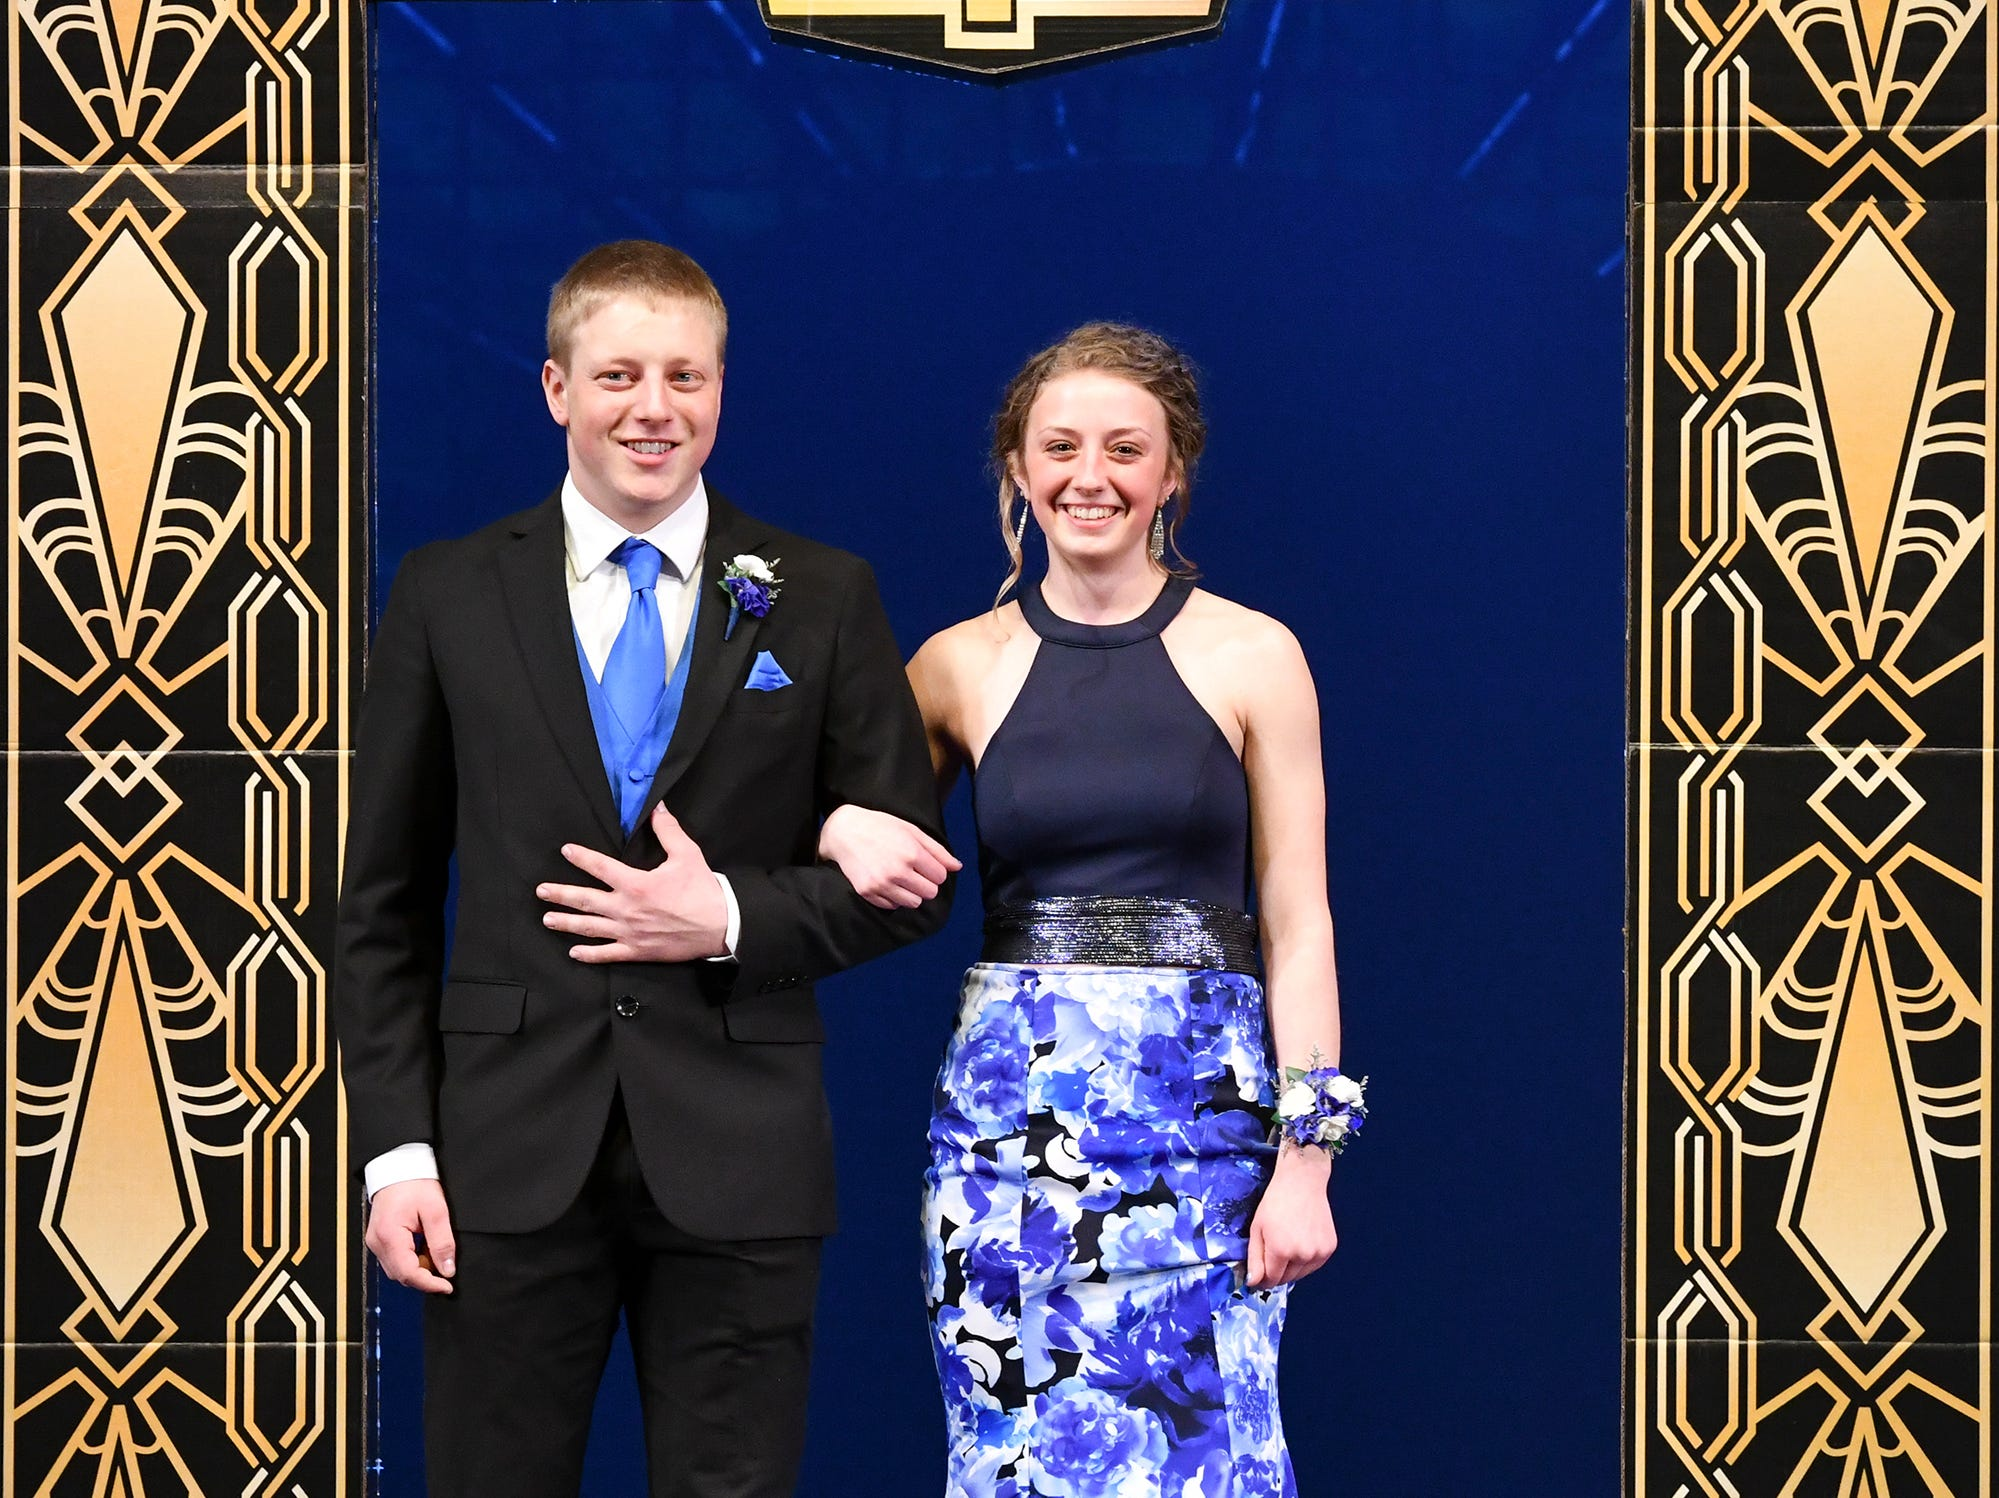 Sophia Waletzko and Derek Kulzer smile during prom grand march Saturday, April 6, at Albany High School.